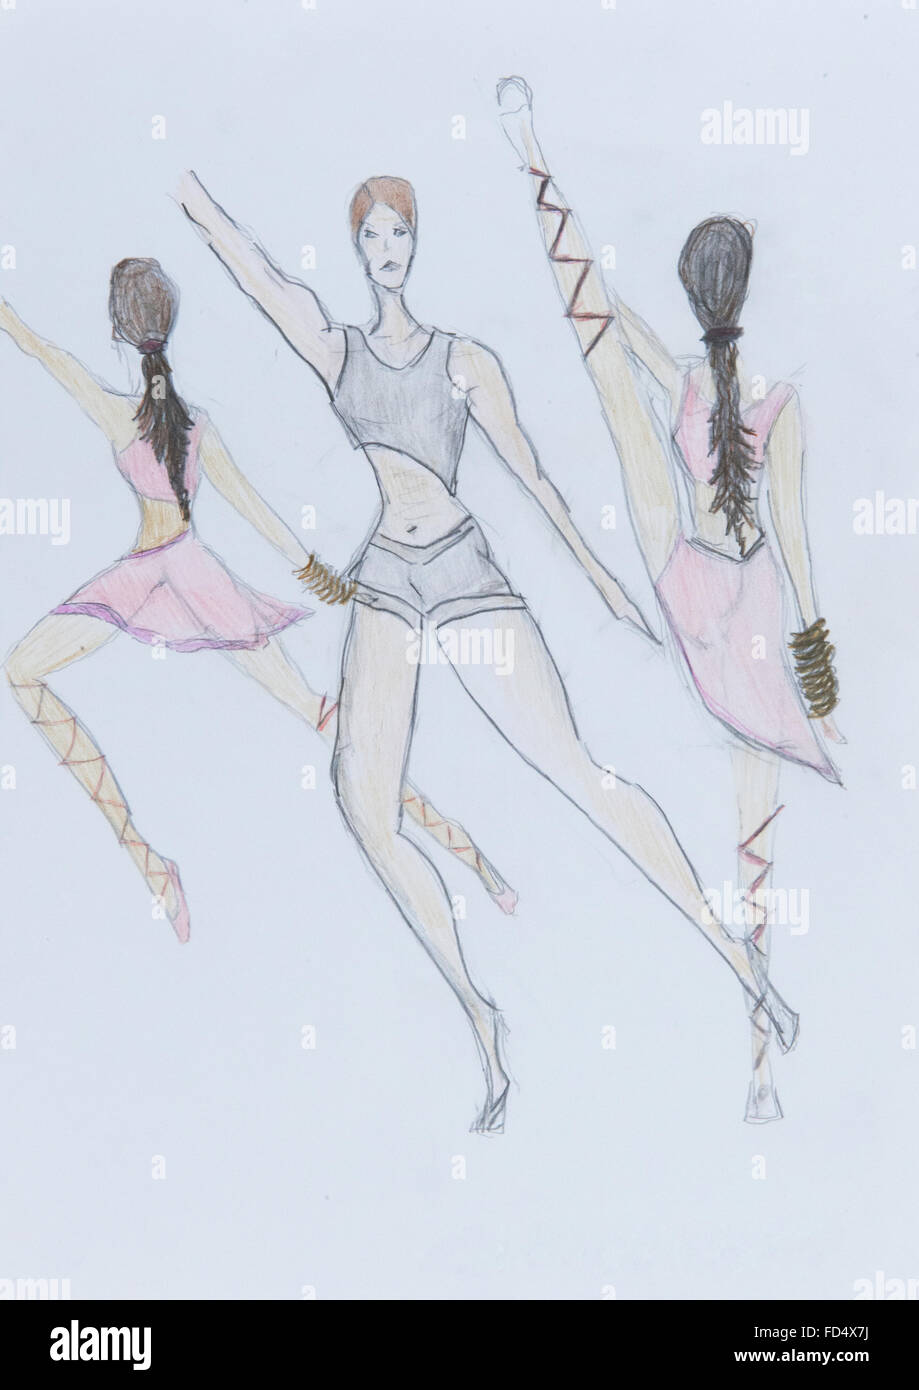 Draw Of Ballet Dancer Stockfotos & Draw Of Ballet Dancer Bilder - Alamy